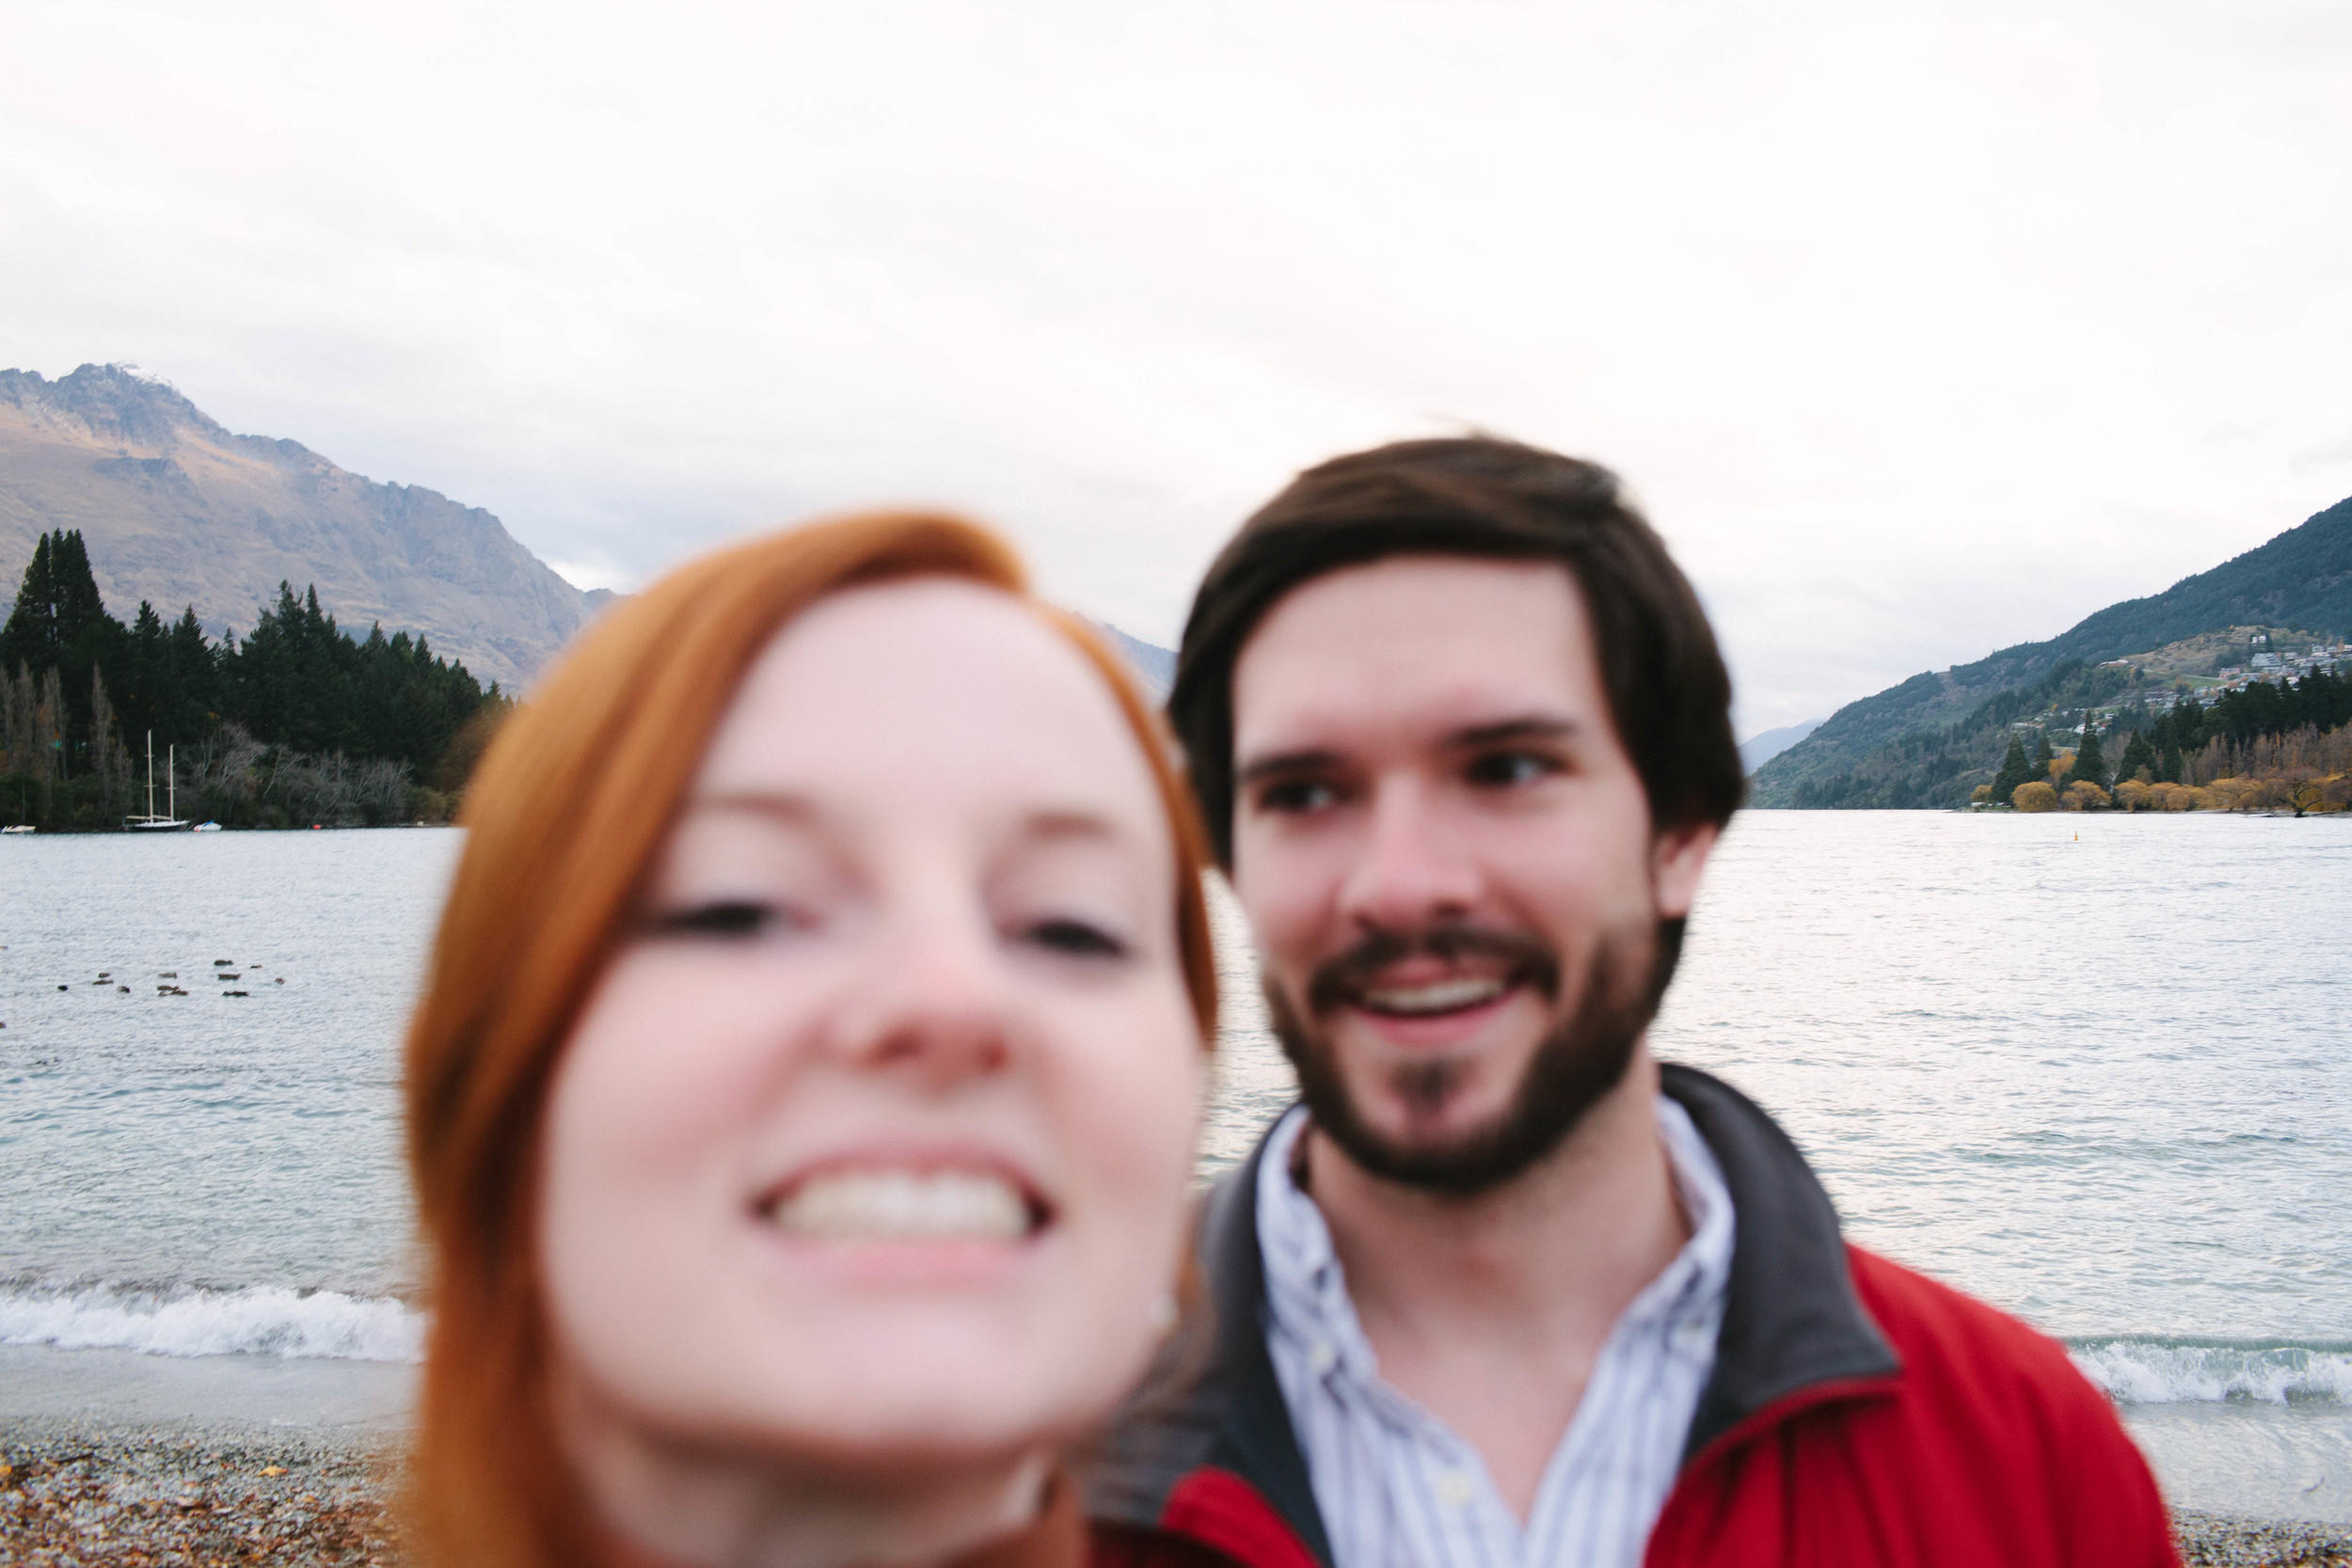 Our attempt at a selfie with my big ol' camera. HA.